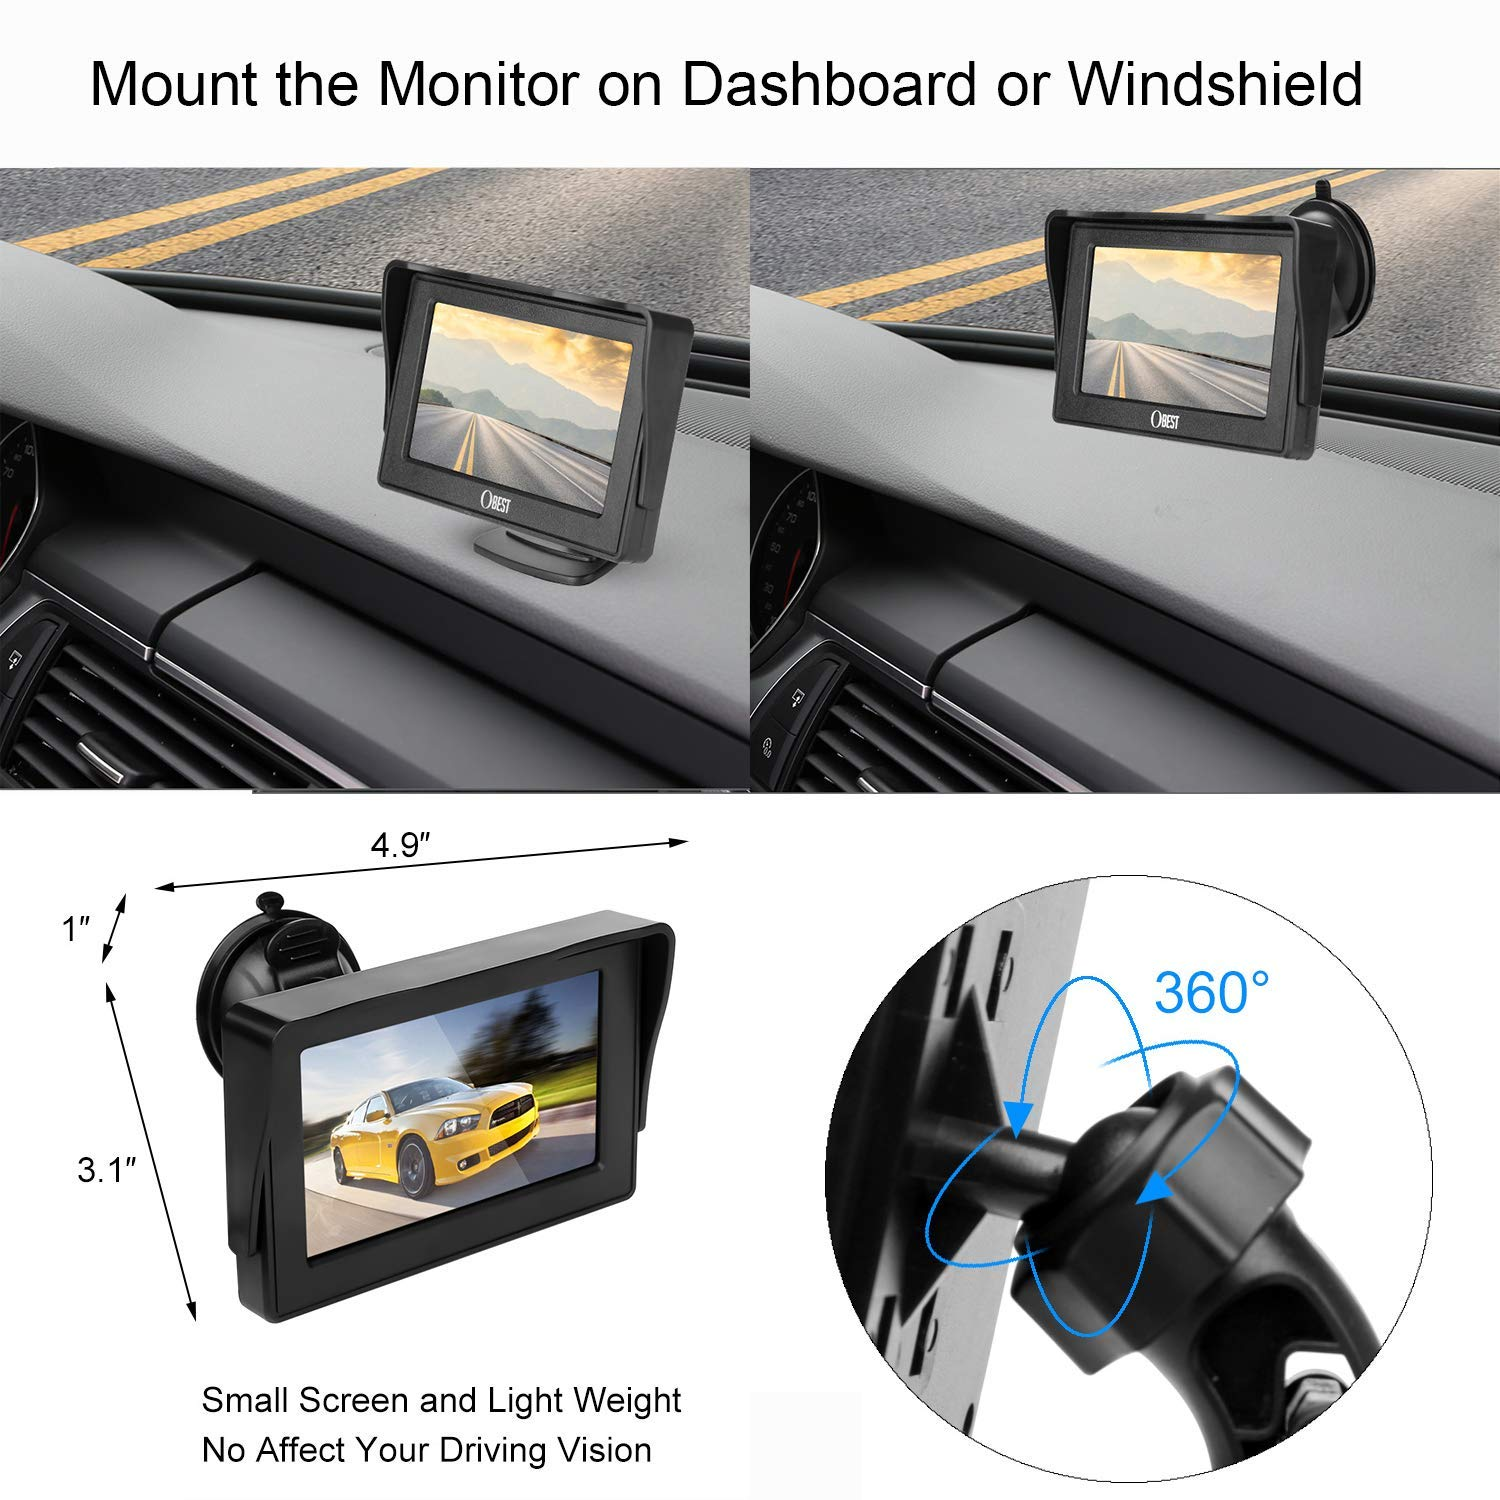 B-Qtech Backup Camera and Monitor Kit Mini Rear View Reverse Camera Waterproof Night Vision with Guide Lines and 4.3 LCD Display for Car SUV Van 5558989981